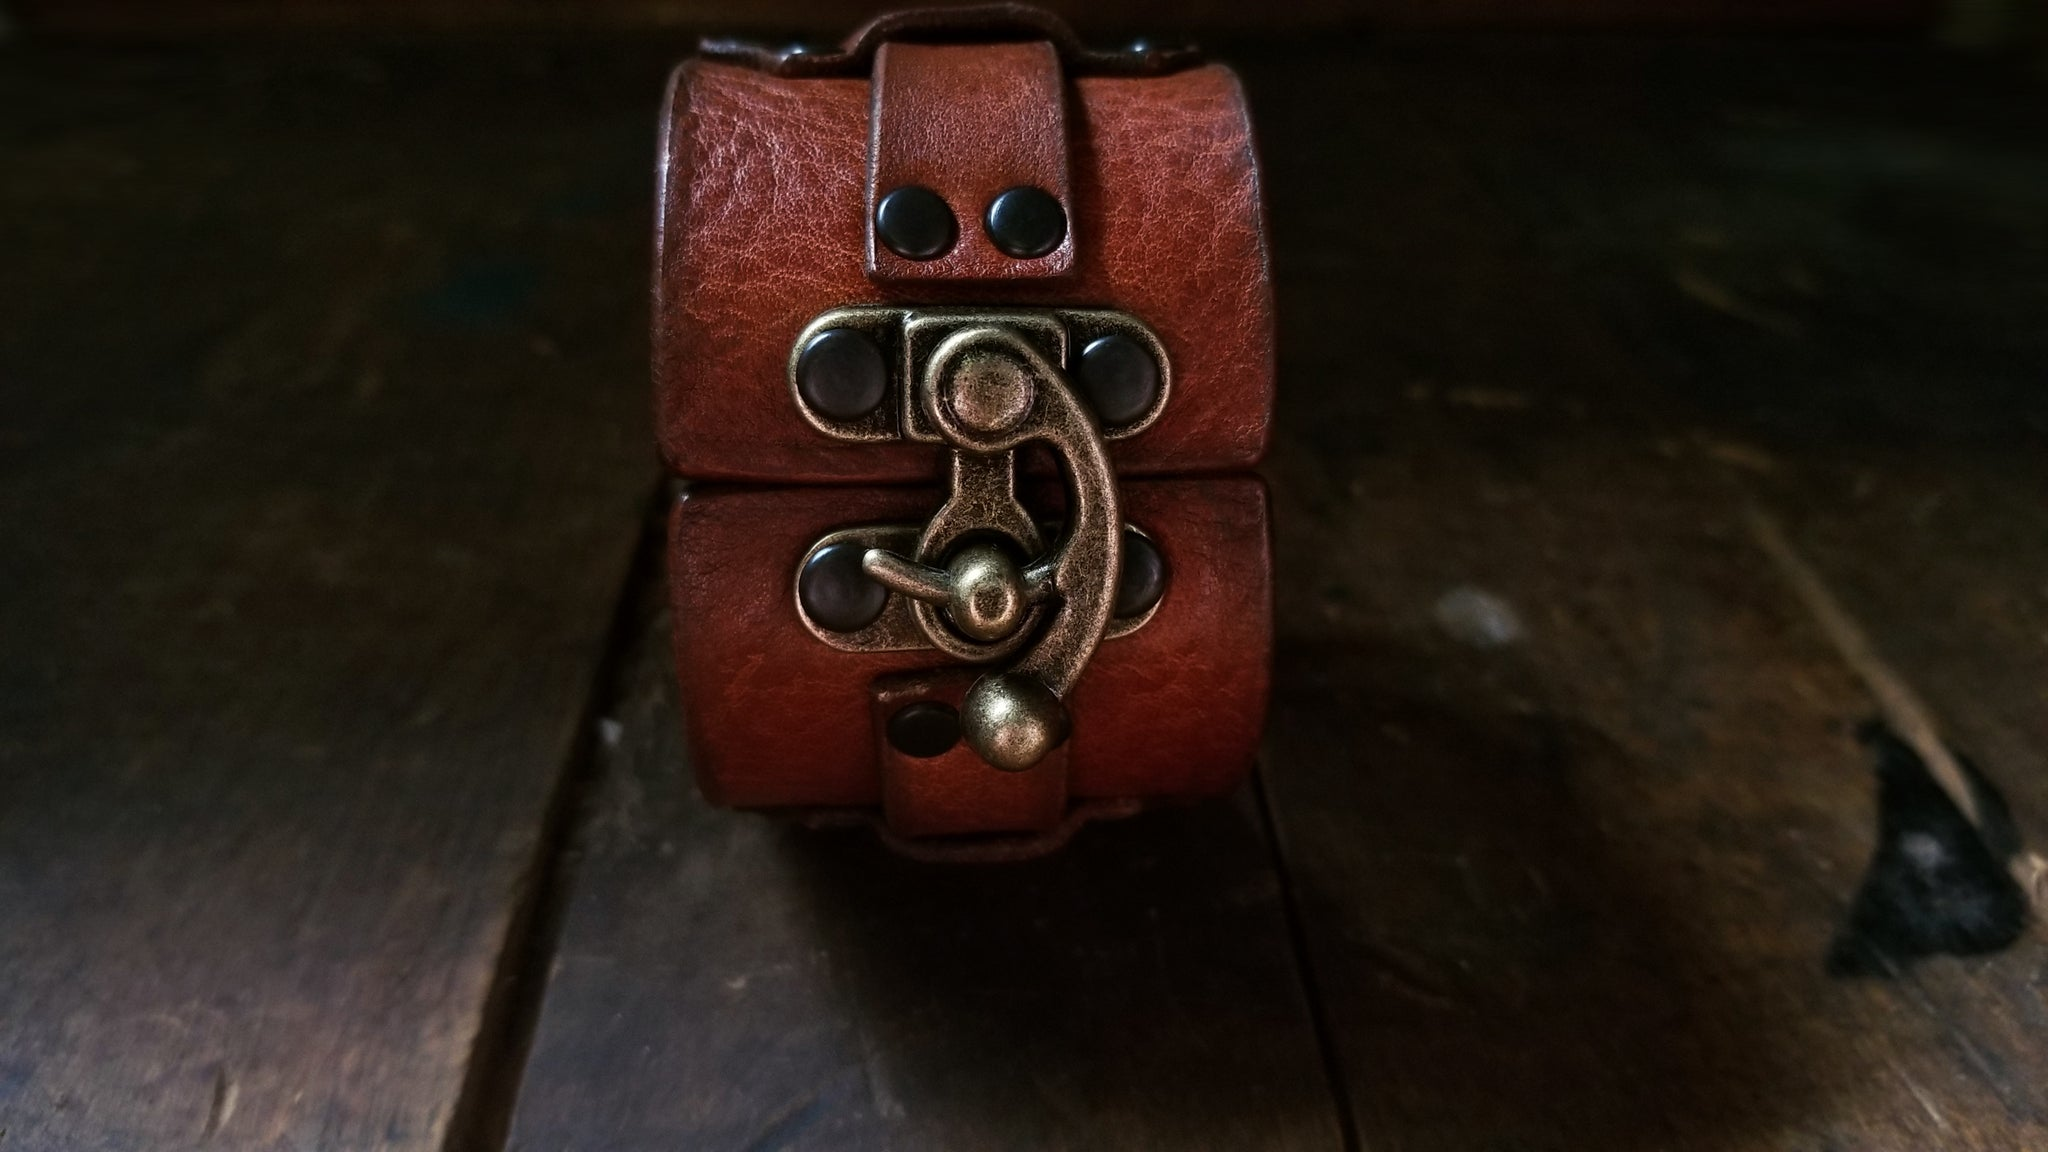 Hook Leather Cuff - Slim. Wide leather snap cuff with antique brass hook & latch in the color tobacco